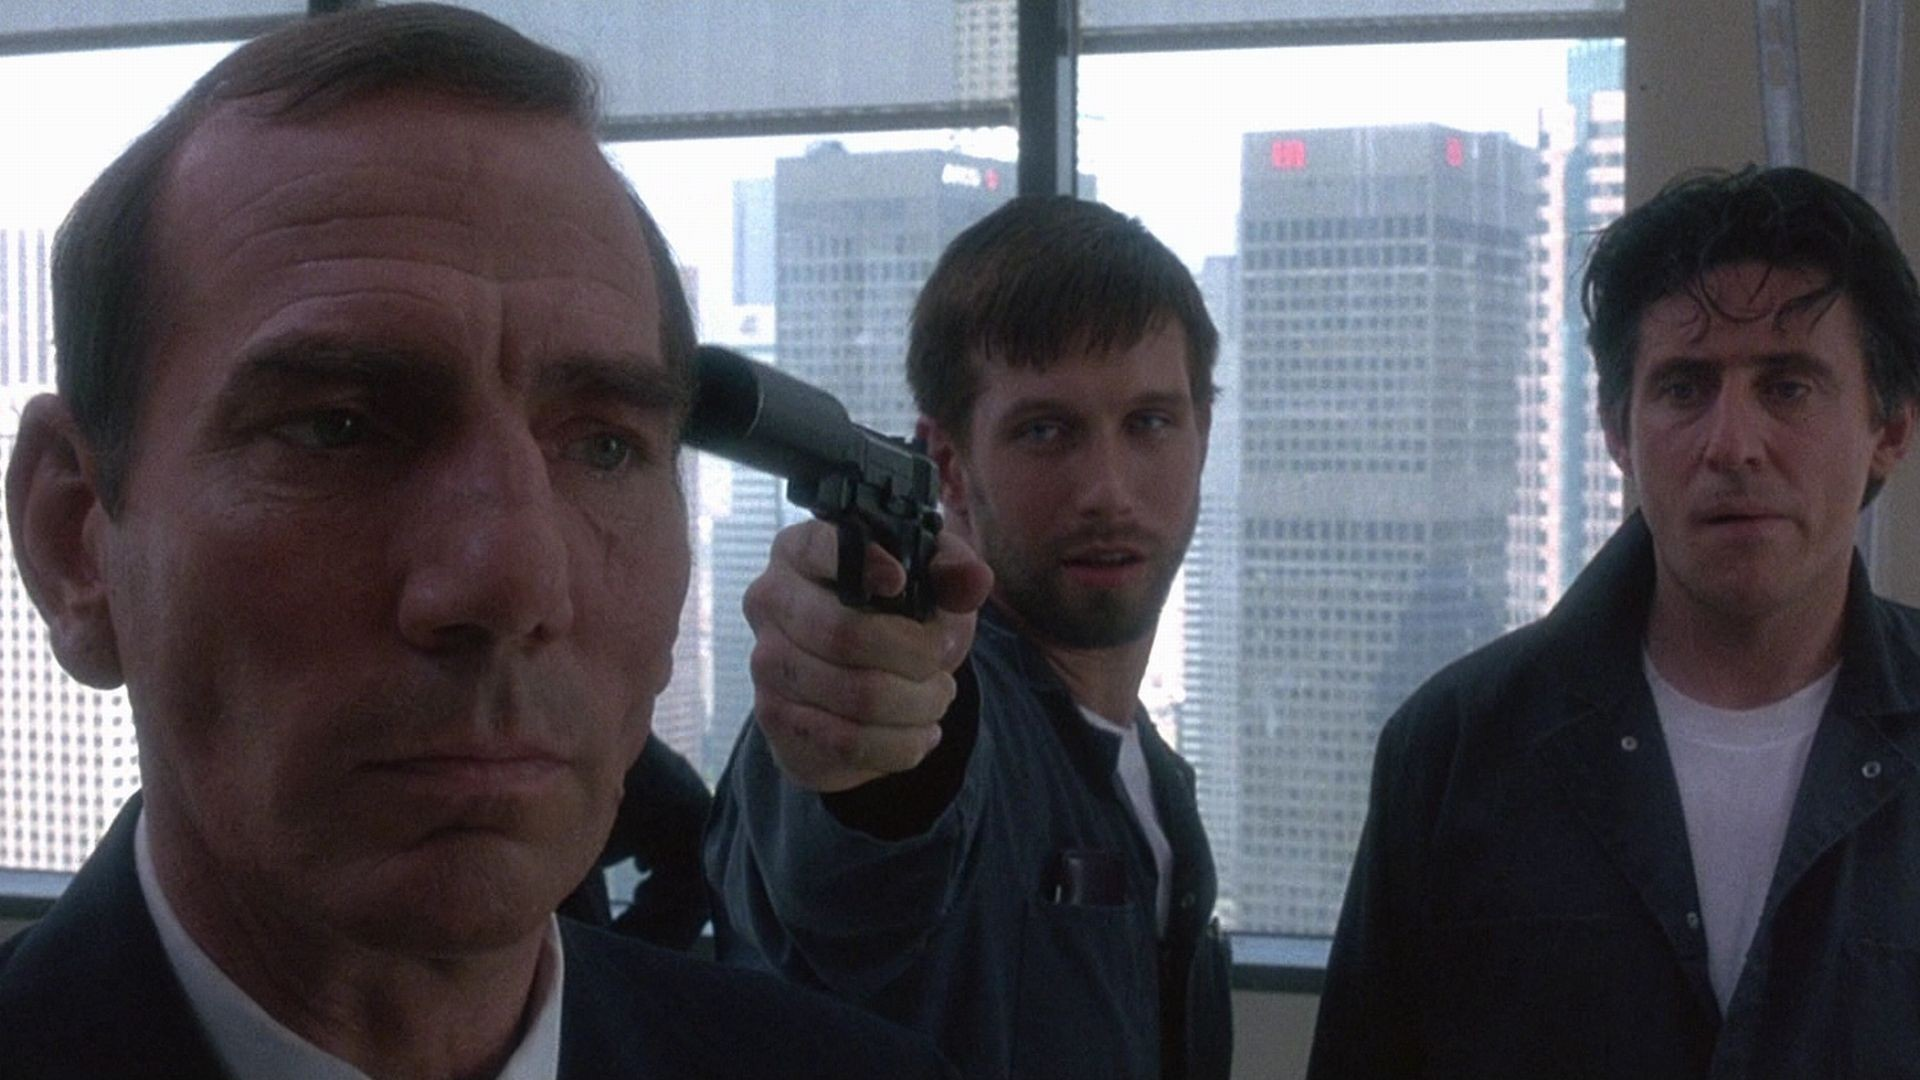 Amazing The Usual Suspects Pictures & Backgrounds